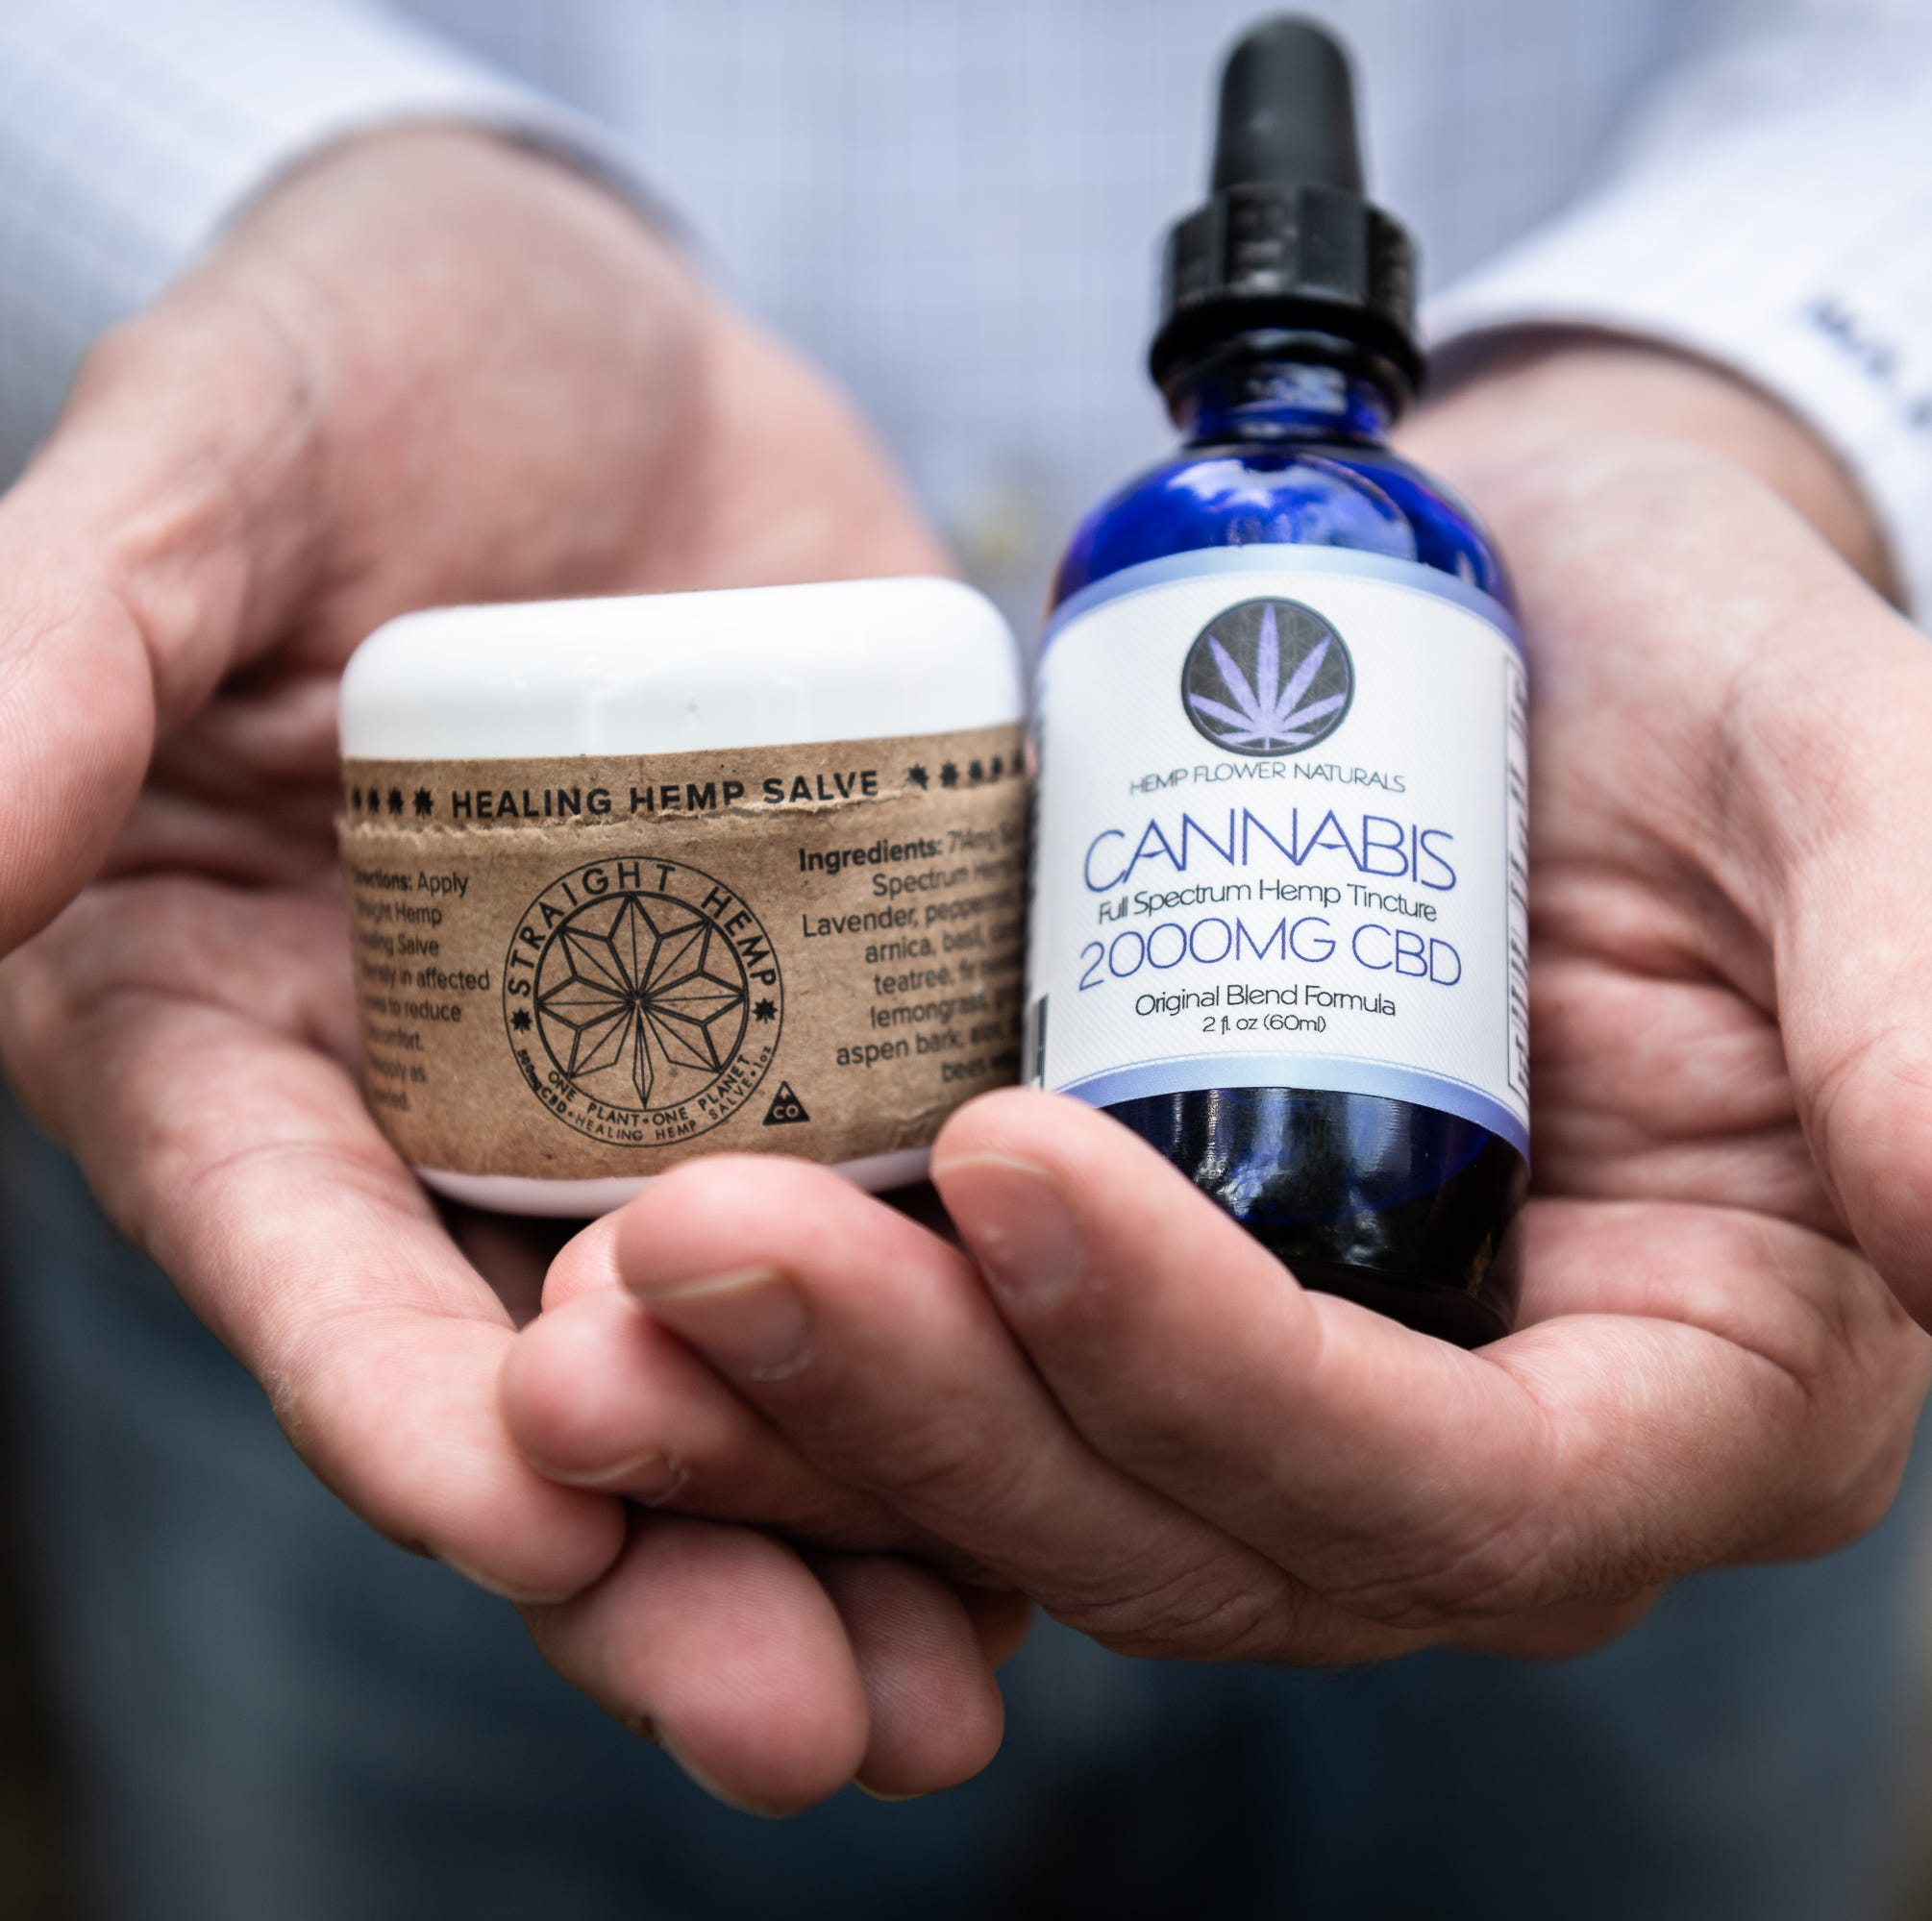 CBD oil products abound, but do they really work? Some say yes while experts urge caution